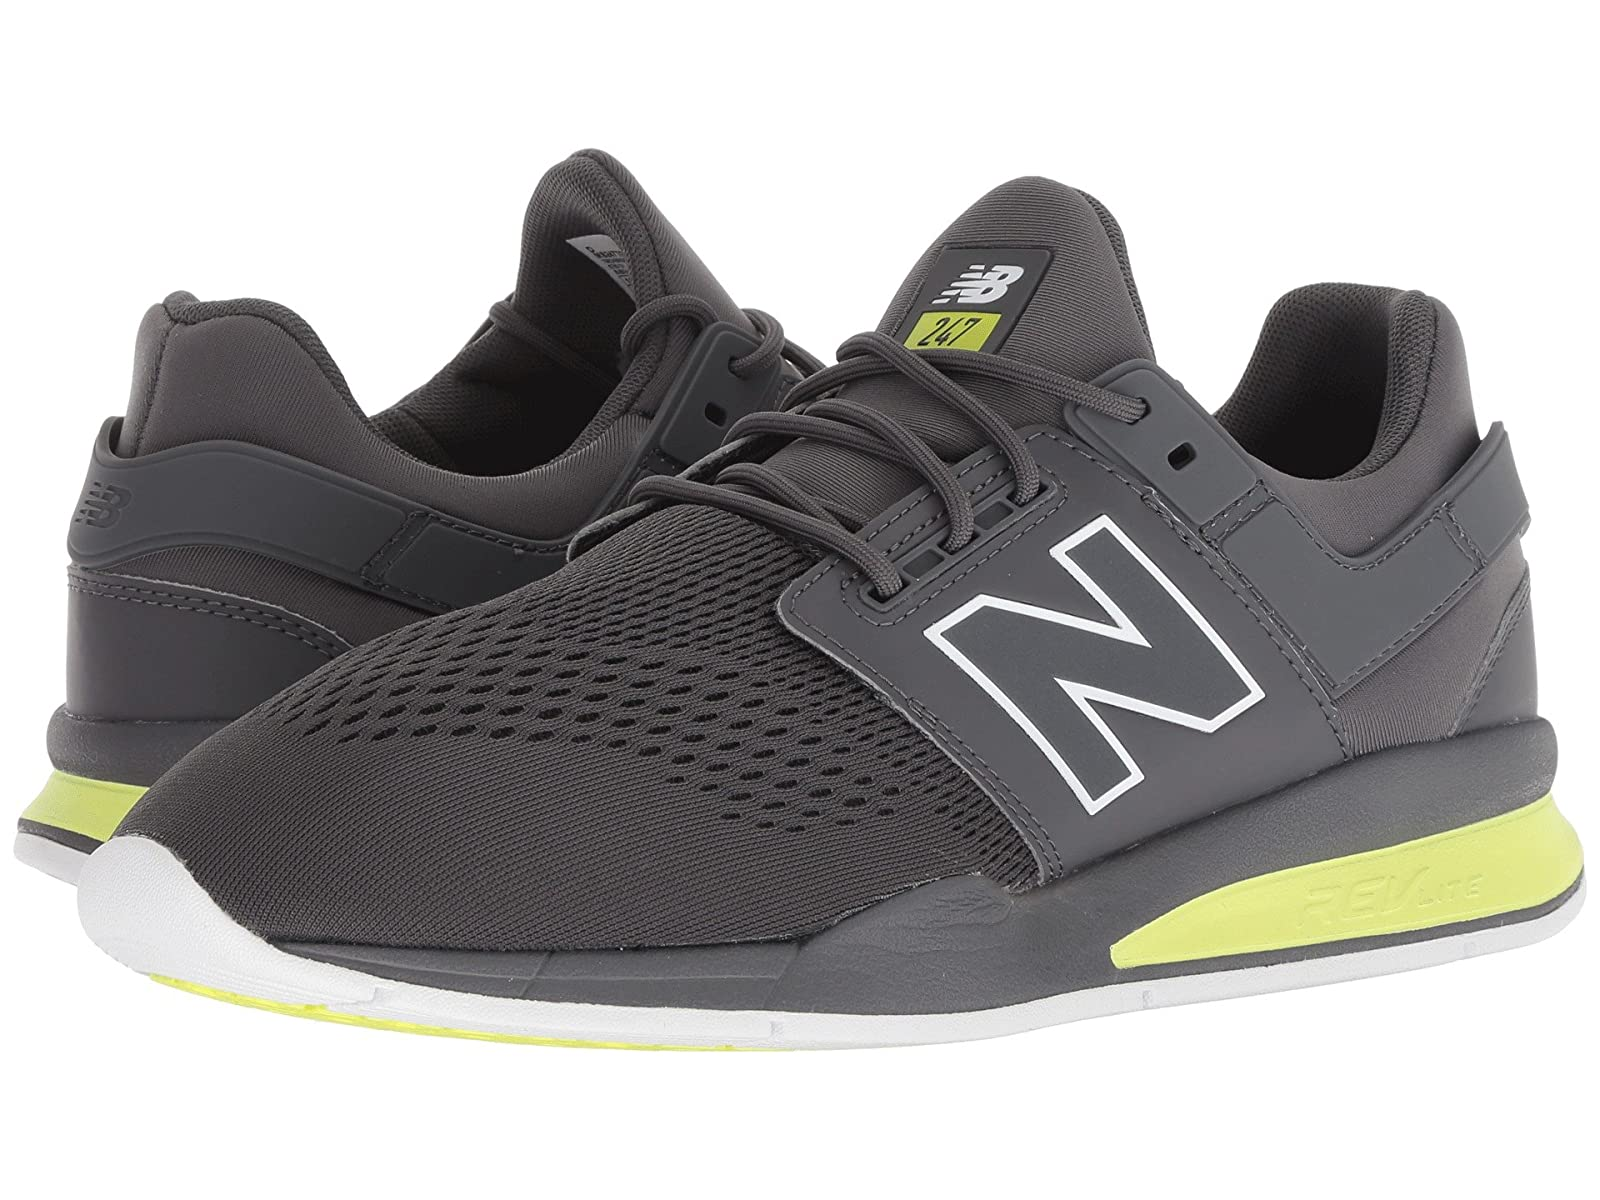 New Balance Classics MS247v2Atmospheric grades have affordable shoes